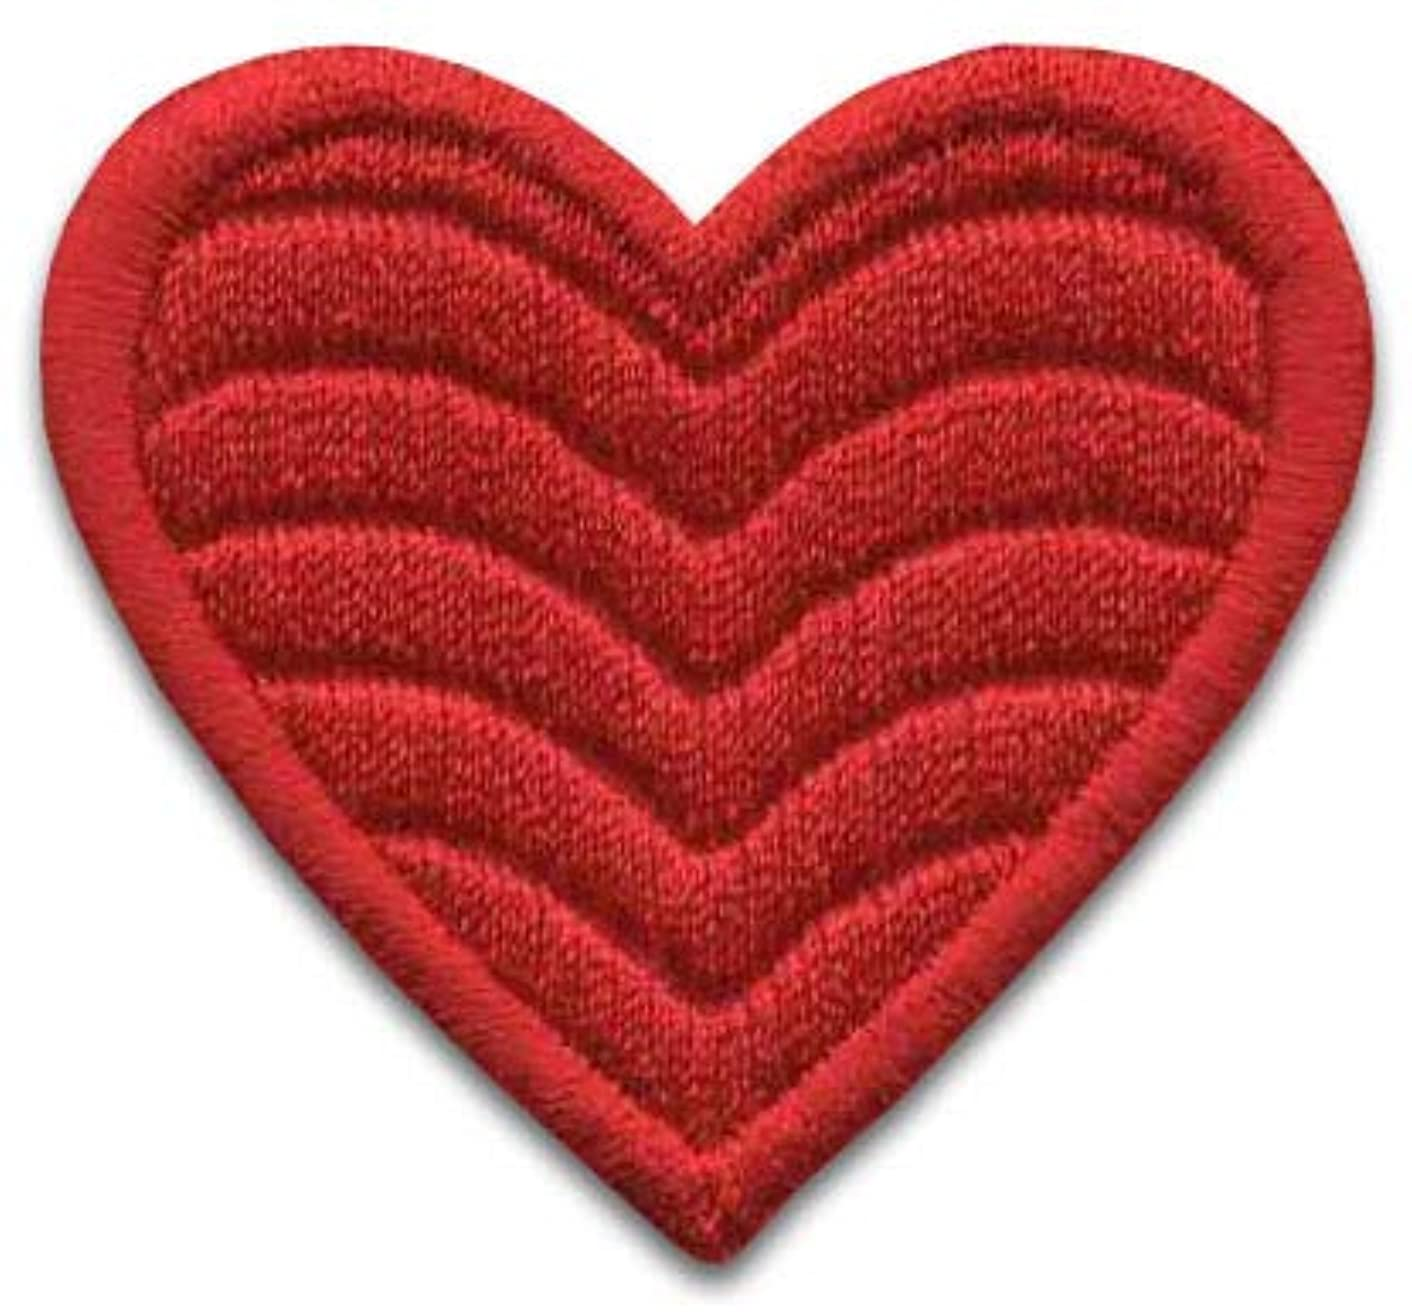 Iron On Patches - Red Heart Patch Iron On 6 pcs Patch Embroidered Applique Heart (1,85x1,96inch) S-33